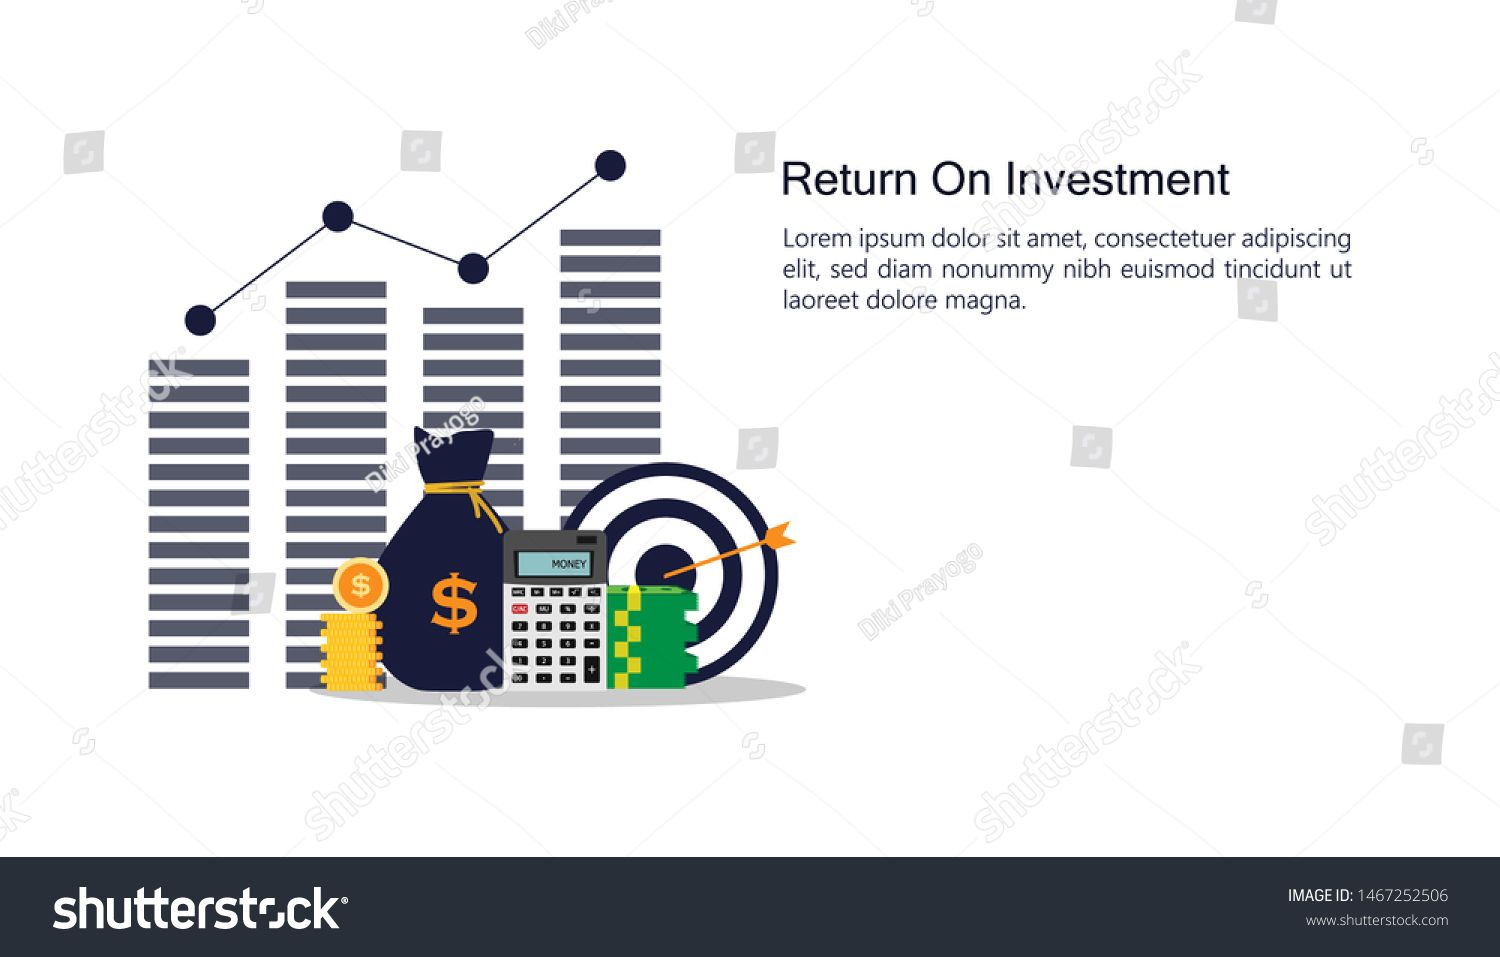 Return On Investment Concept Business Growth Arrows To Success Money Stock Pile Calculator And Money Bag Chart In In 2020 Finance Business Growth Business Finance